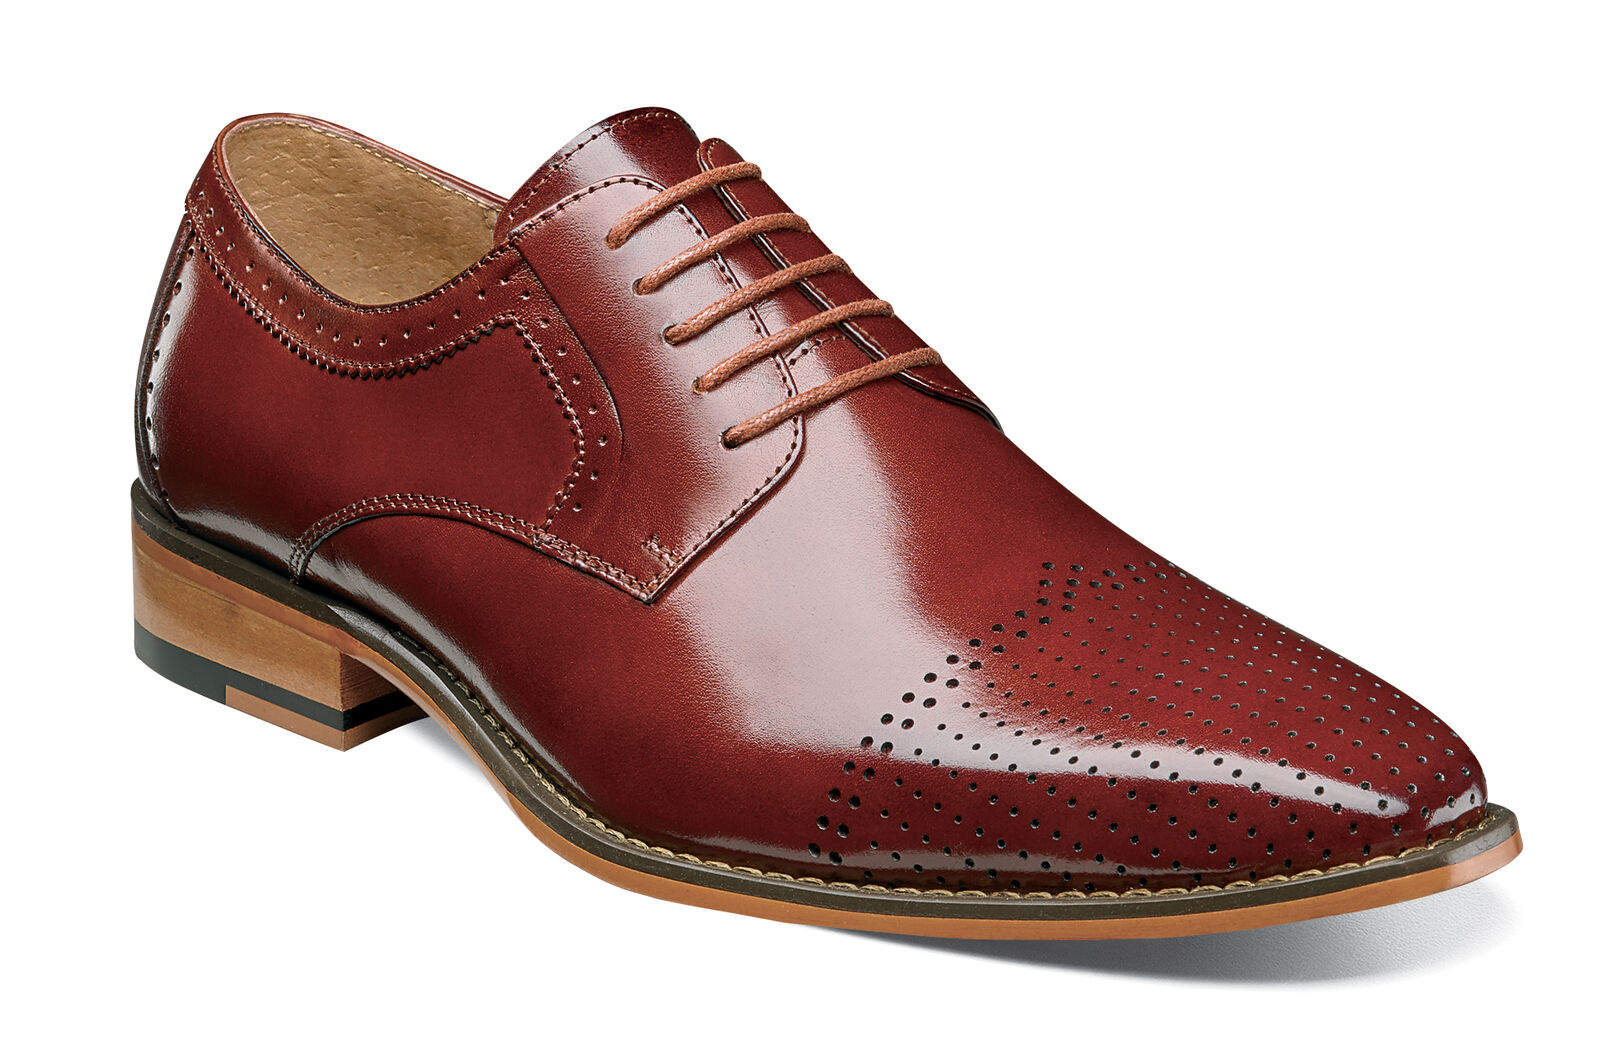 Stacy Adams Sanborn Rust Rosso Buffalo Leather Cap Toe Lace Dress Shoes Size 9.5